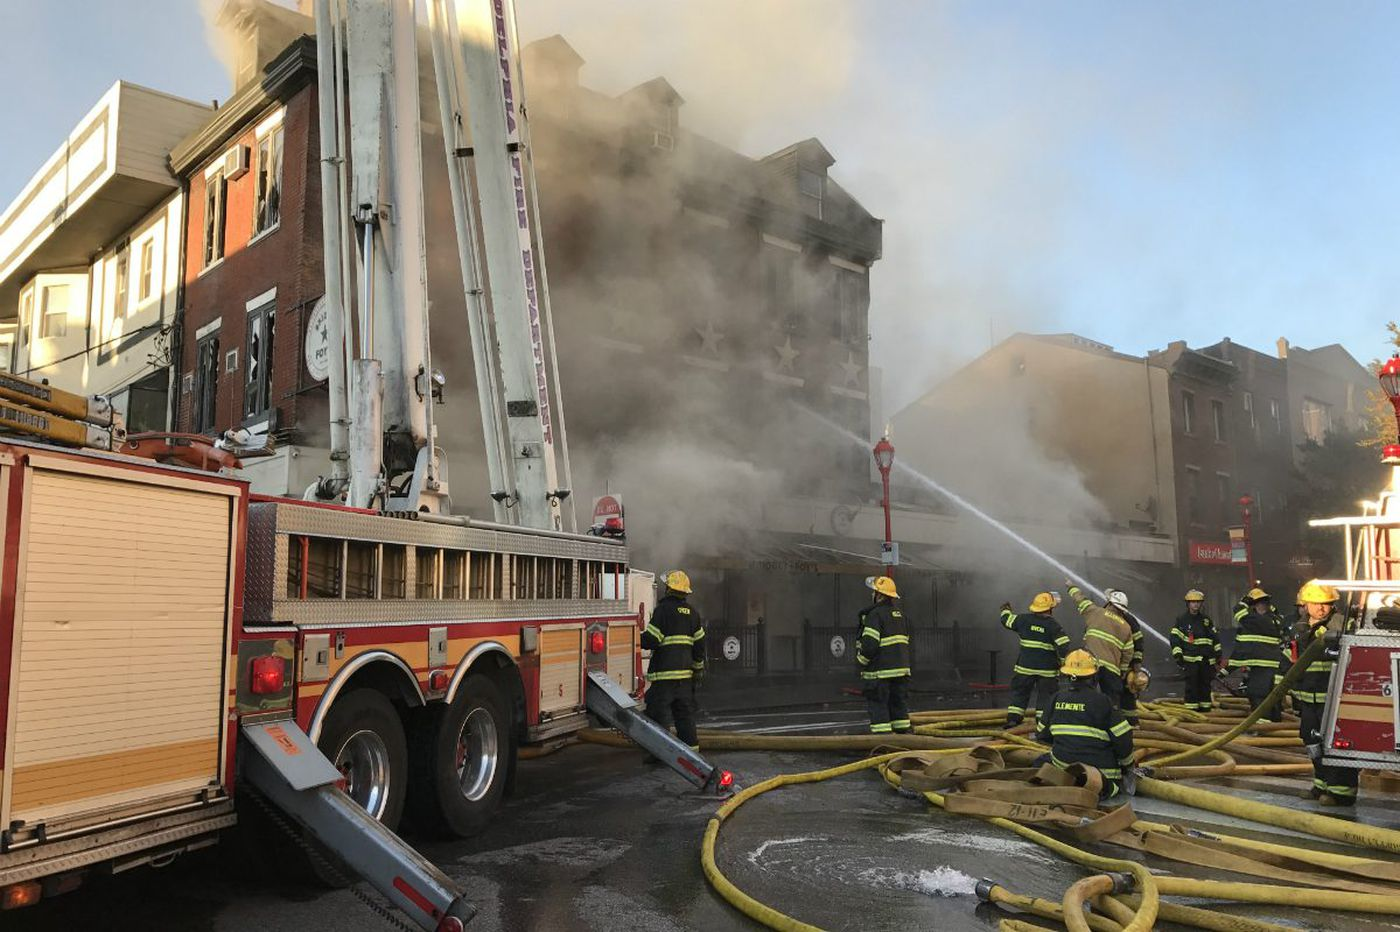 Pet store to donate goods after Bridget Foy's fire destroyed store